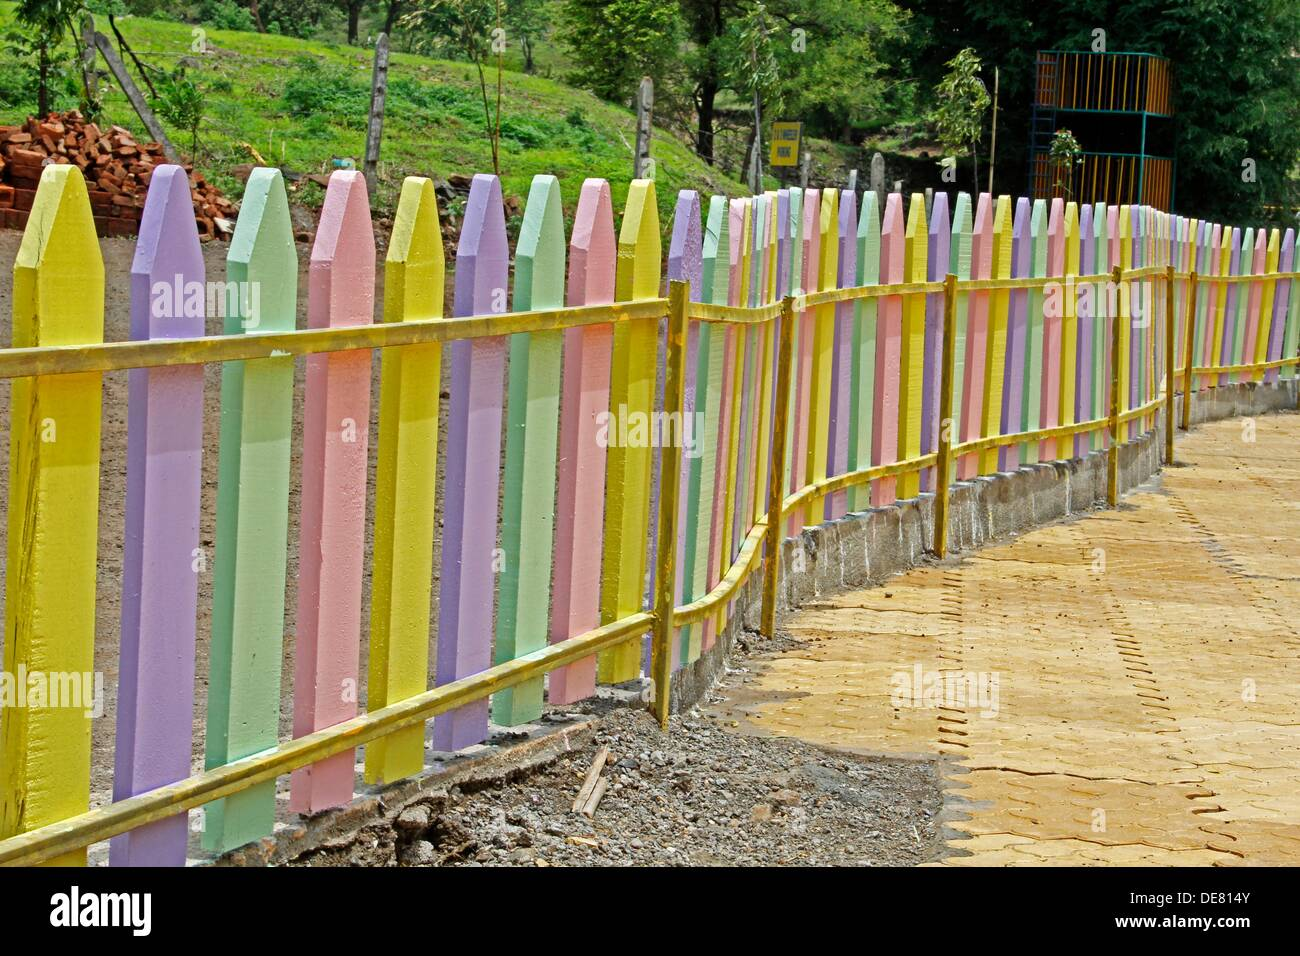 Colorful wooden compound wall in a school pune maharashtra india